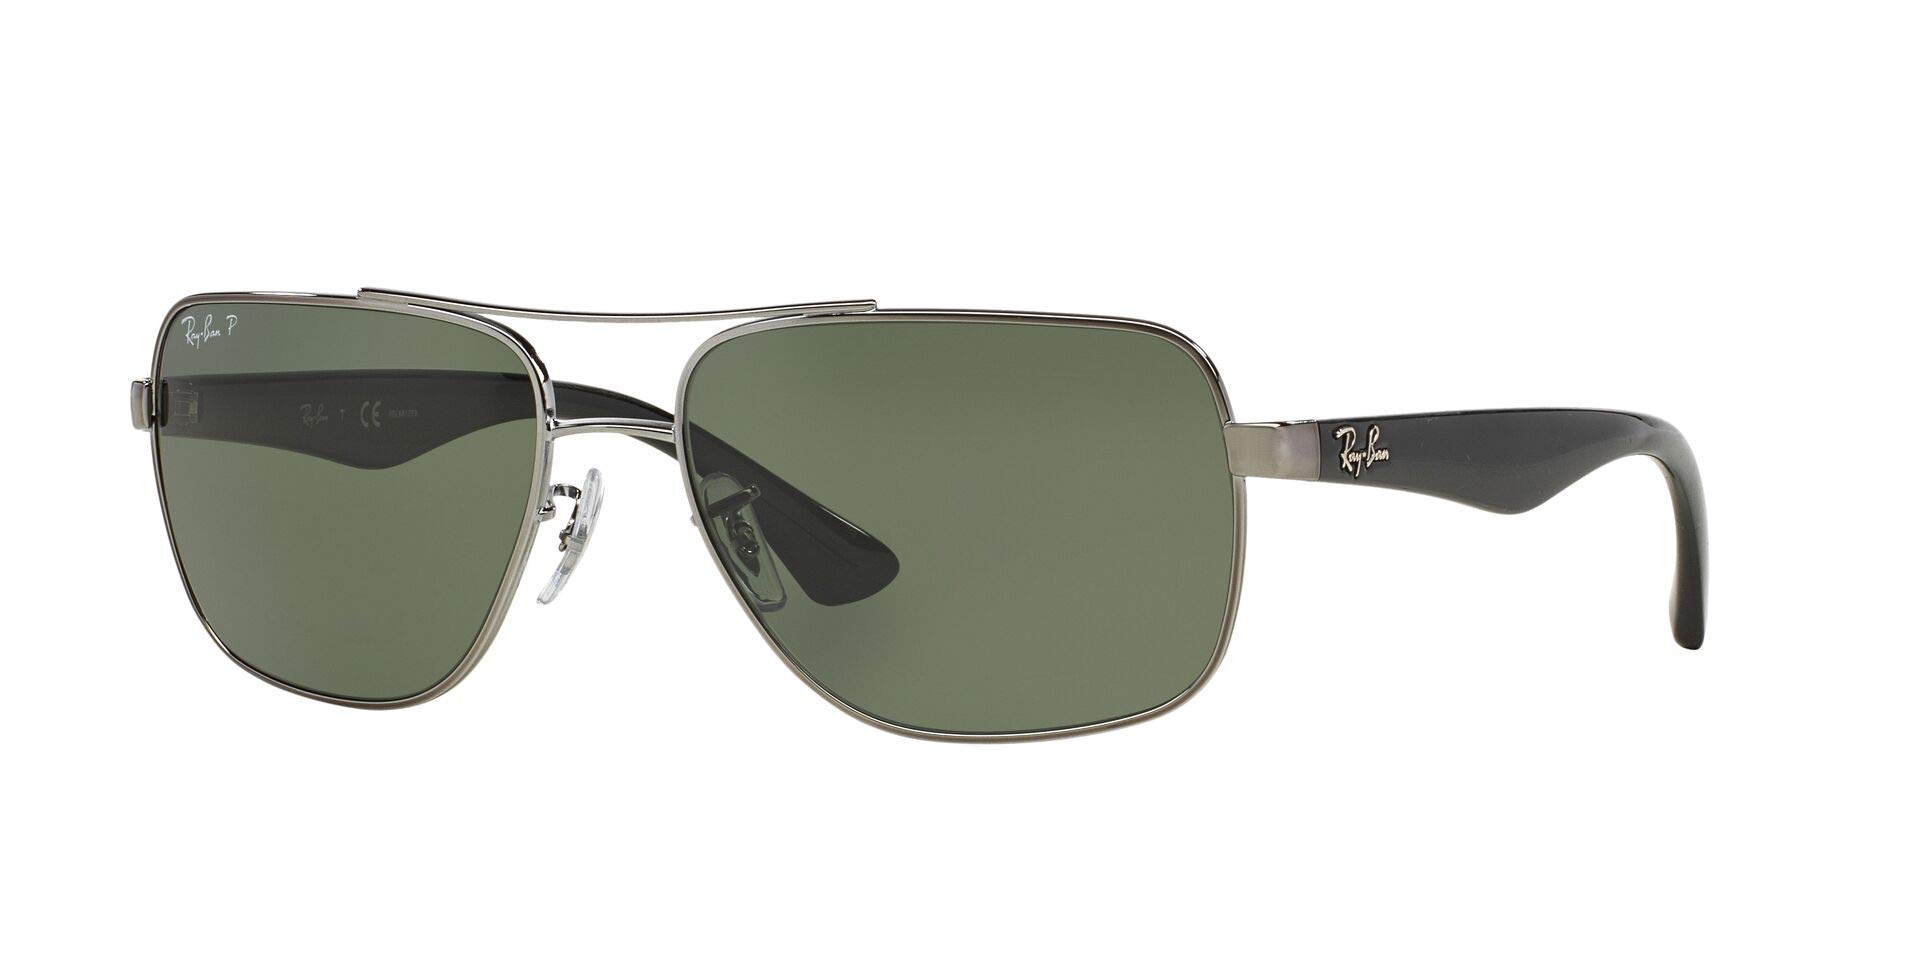 RAY-BAN Men's RB3483 Square Metal Sunglasses, Gunmetal/Green, 60 mm by RAY-BAN